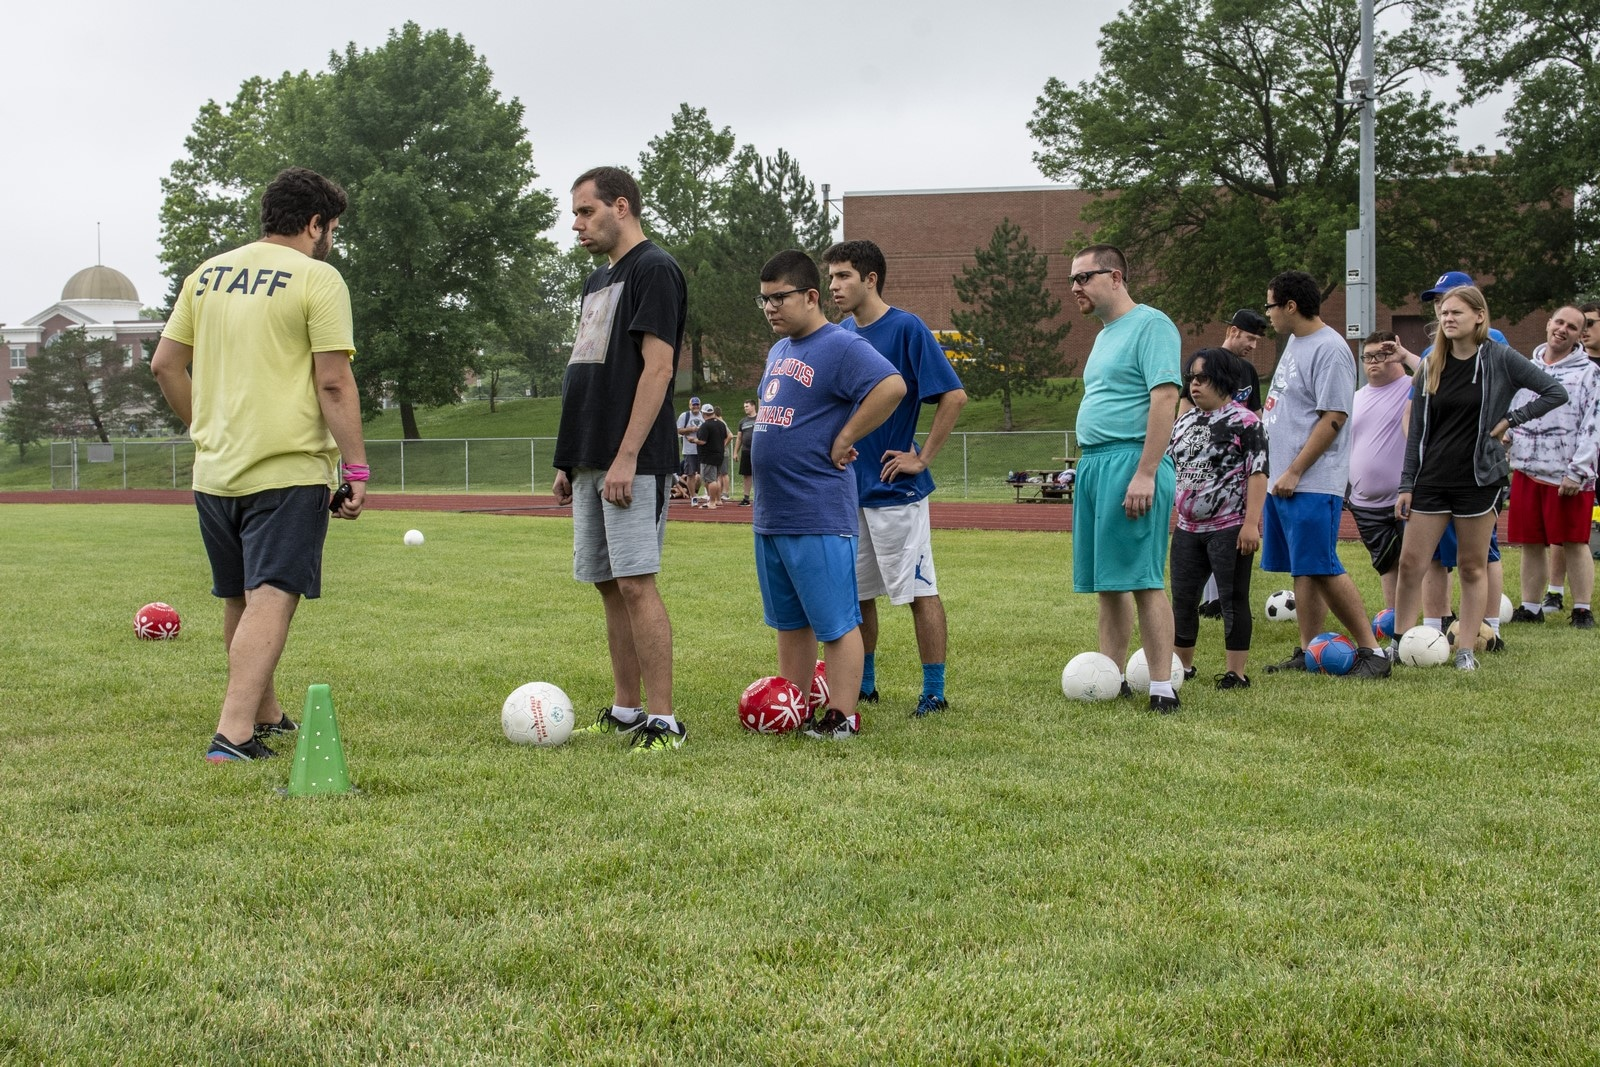 A line of athletes stand with soccer balls at their feet listening to the volunteer's suggestions